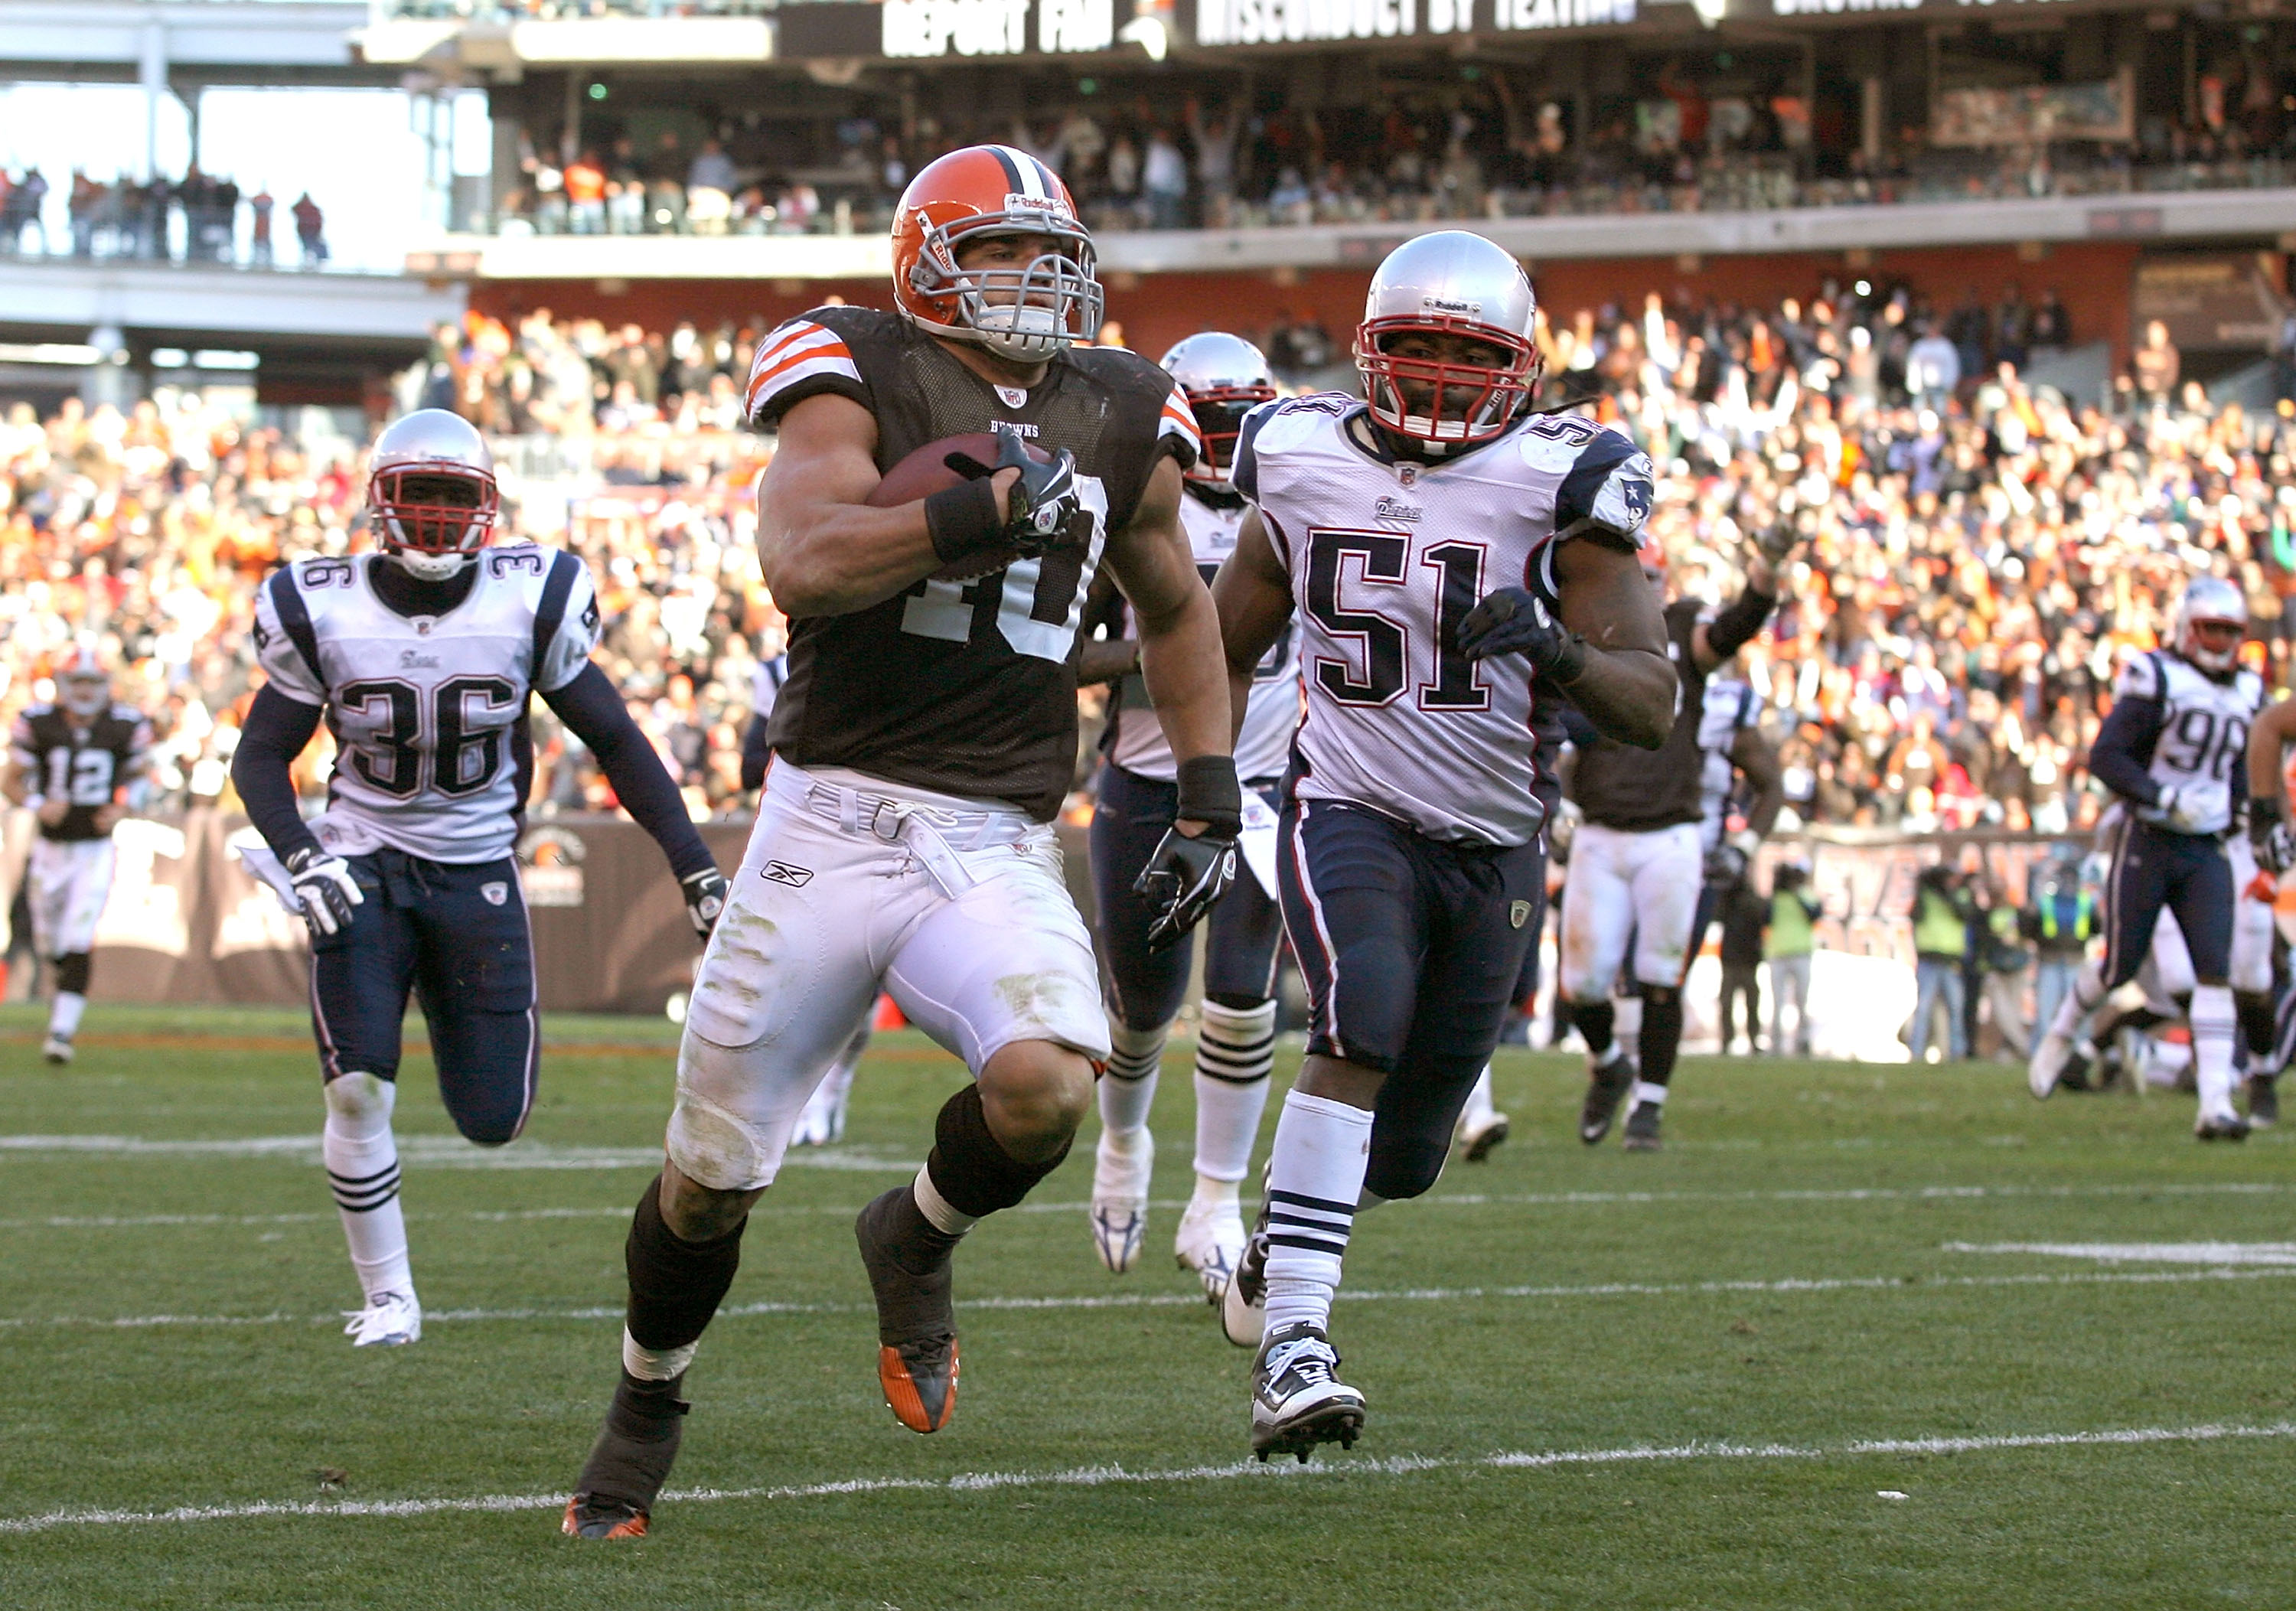 CLEVELAND - NOVEMBER 07:  Running back Peyton Hillis #40 of the Cleveland Browns scores a touchdown in front of Jerod Mayo #51 of the New England Patriots at Cleveland Browns Stadium on November 7, 2010 in Cleveland, Ohio.  (Photo by Matt Sullivan/Getty I